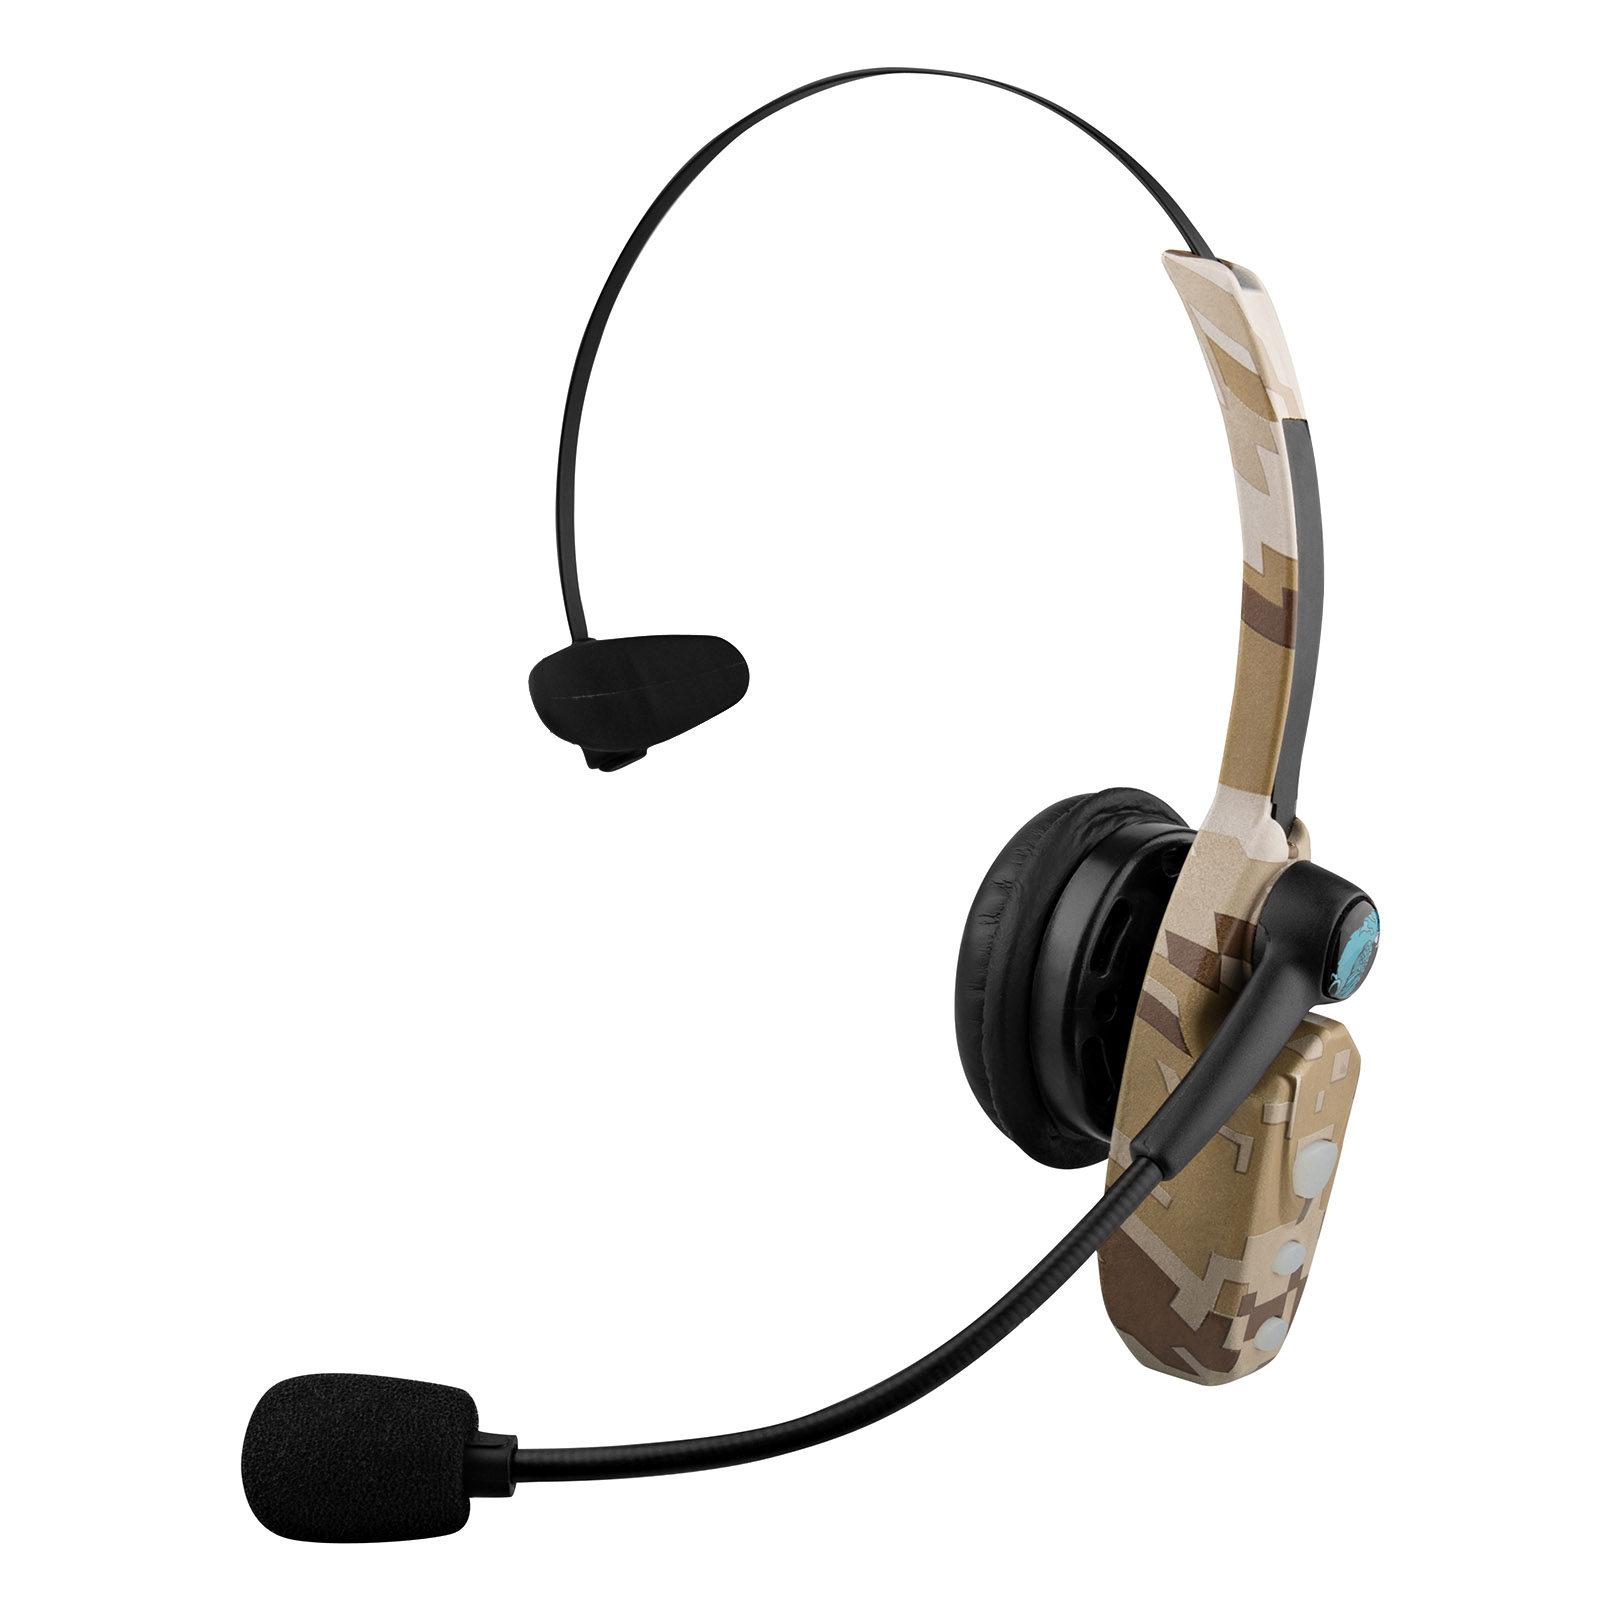 VXI BlueParrott B250-XT+ Noise Cancelling Bluetooth Headset Wounded Warrior Edition (Camo) (Certified Refurbished) by VXi BlueParrott